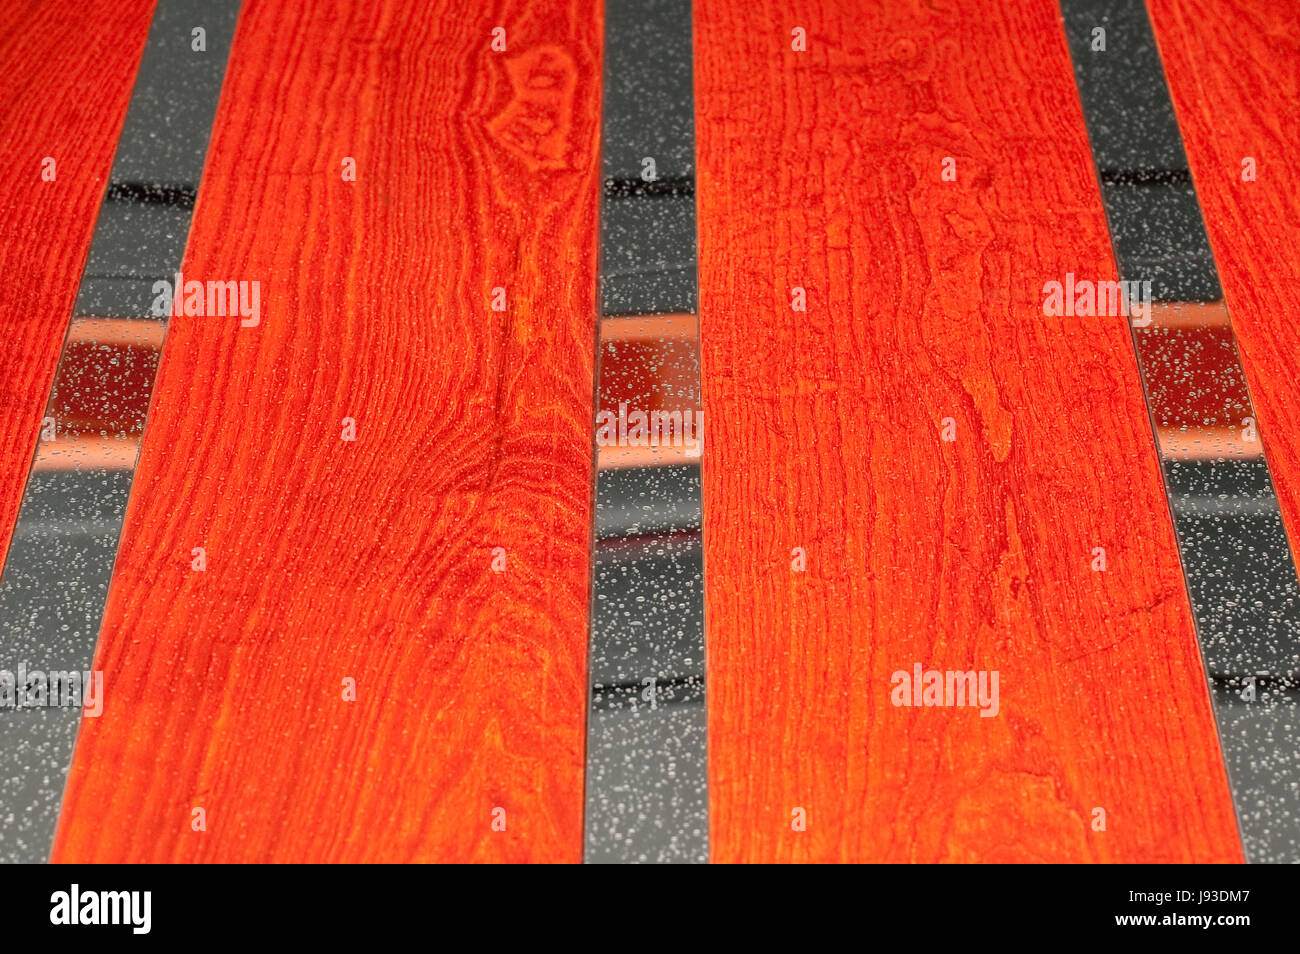 wood, abstract, panel, width of material, backdrop, background, wood, - Stock Image